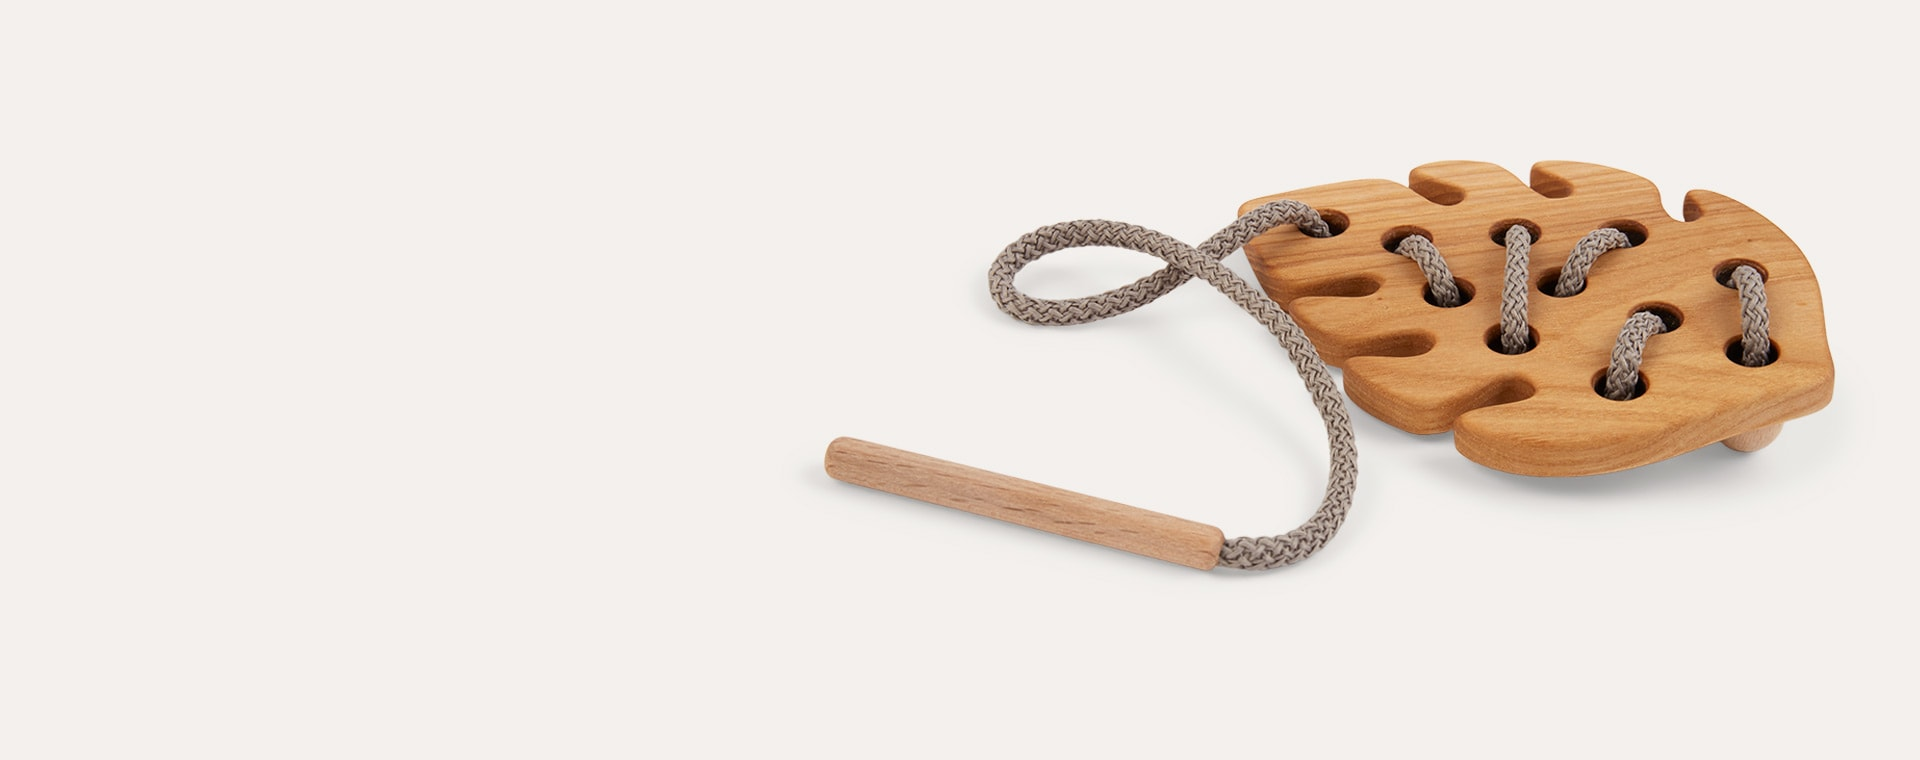 Leaf Blossom & Bear Wooden Lacing Toy